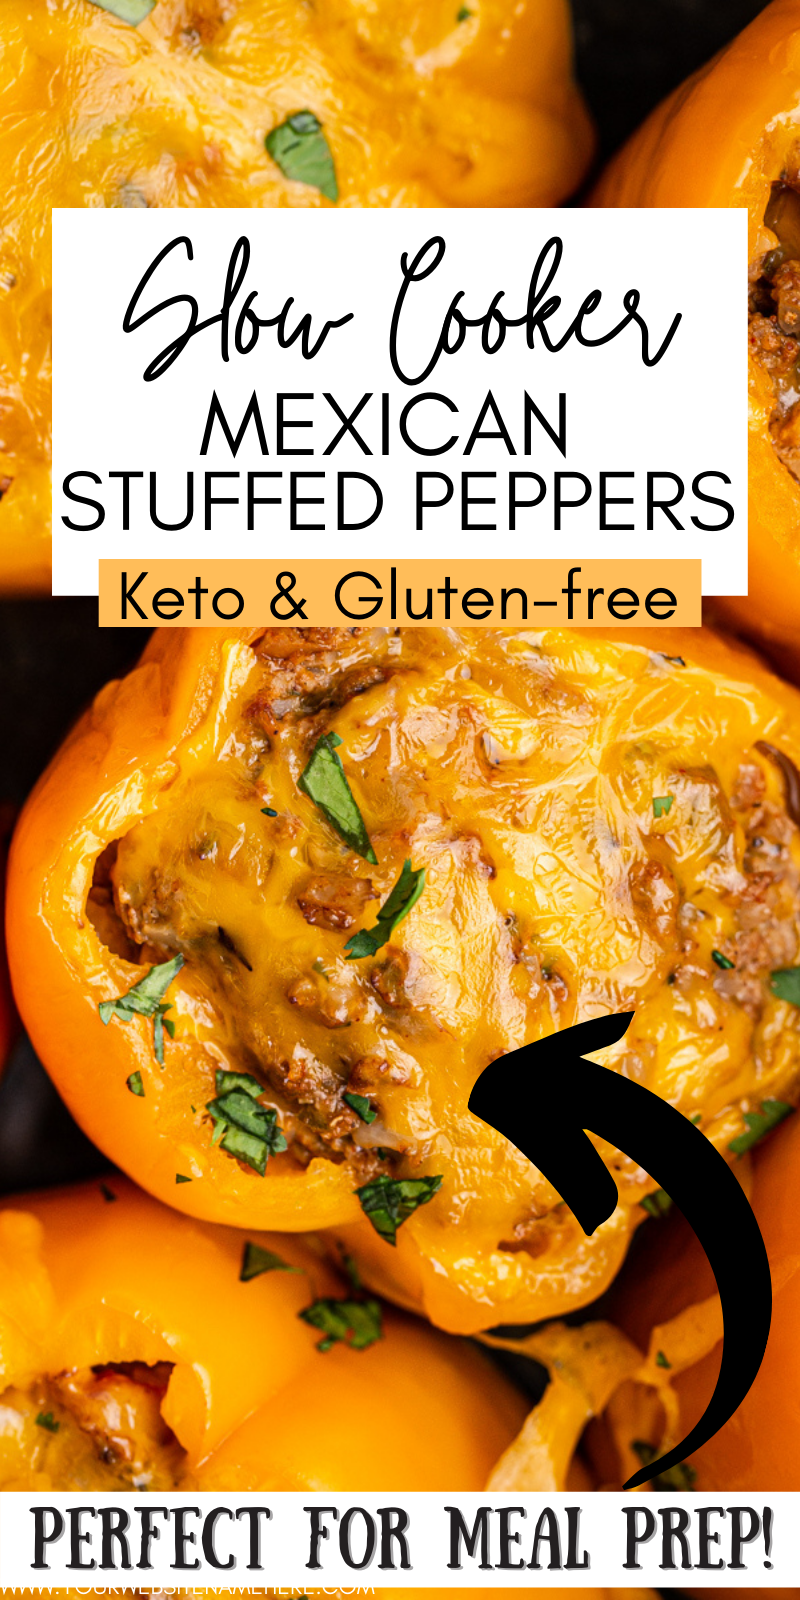 Keto Slow Cooker Mexican Stuffed Peppers - These keto Mexican stuffed peppers are the perfect set it and forget it dinner for Taco Tuesday, or any day. Cheesy and delicious, they are low-carb and gluten-free. #keto #lowcarb #glutenfree #slowcooker #crockpot #mexican #stuffed #peppers